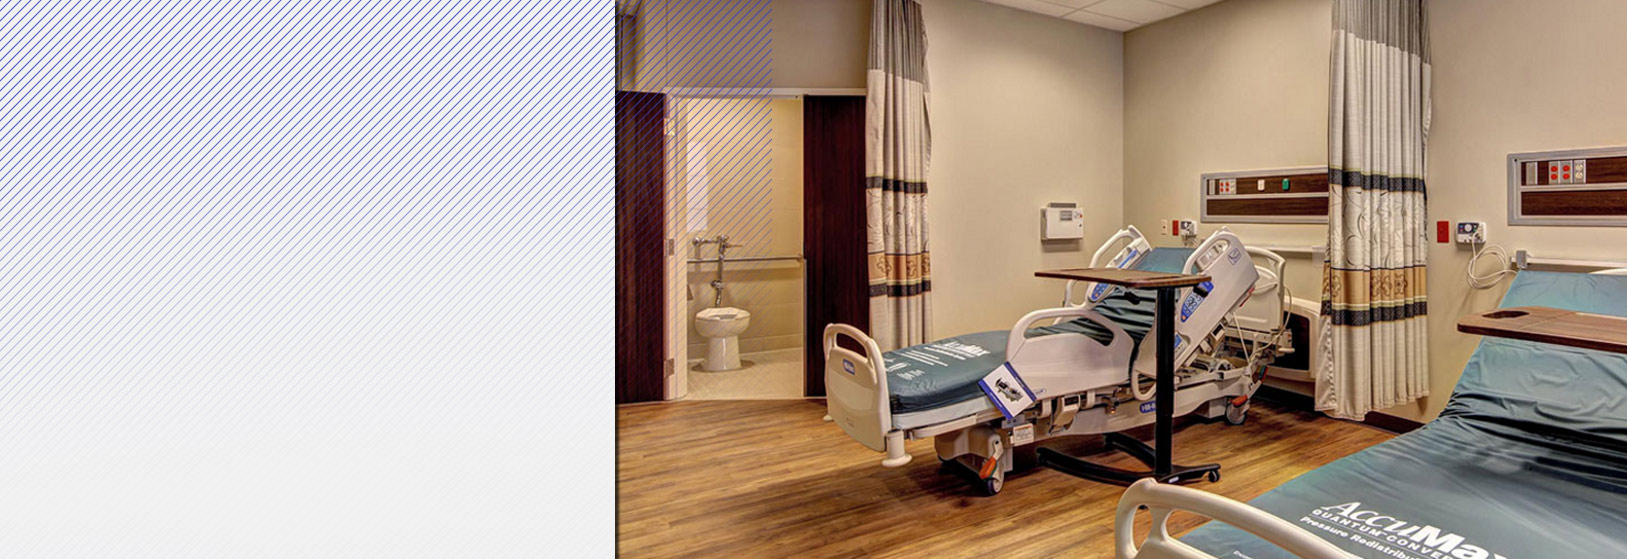 McCamey County Hospital Emergency Room